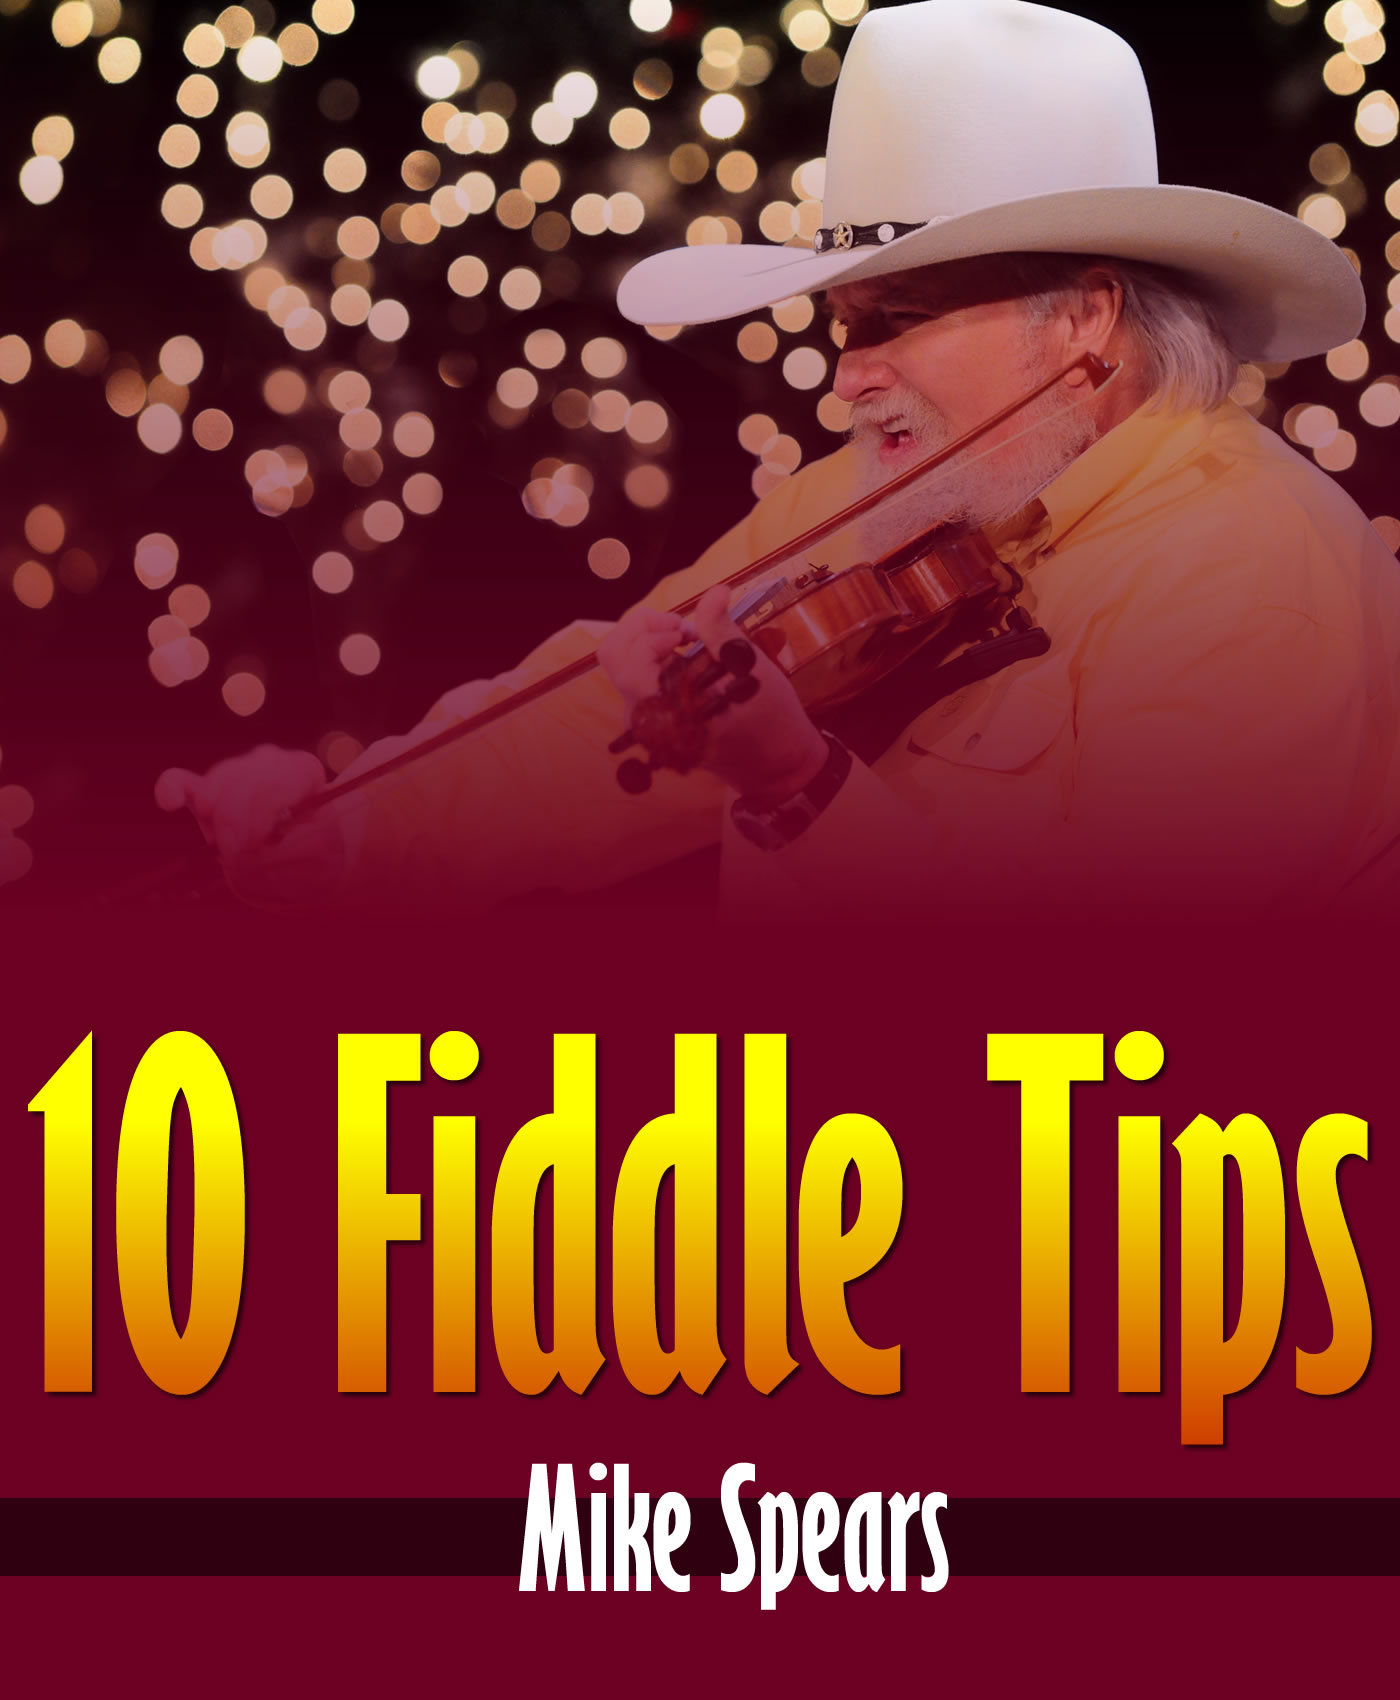 10 Fiddle Tips